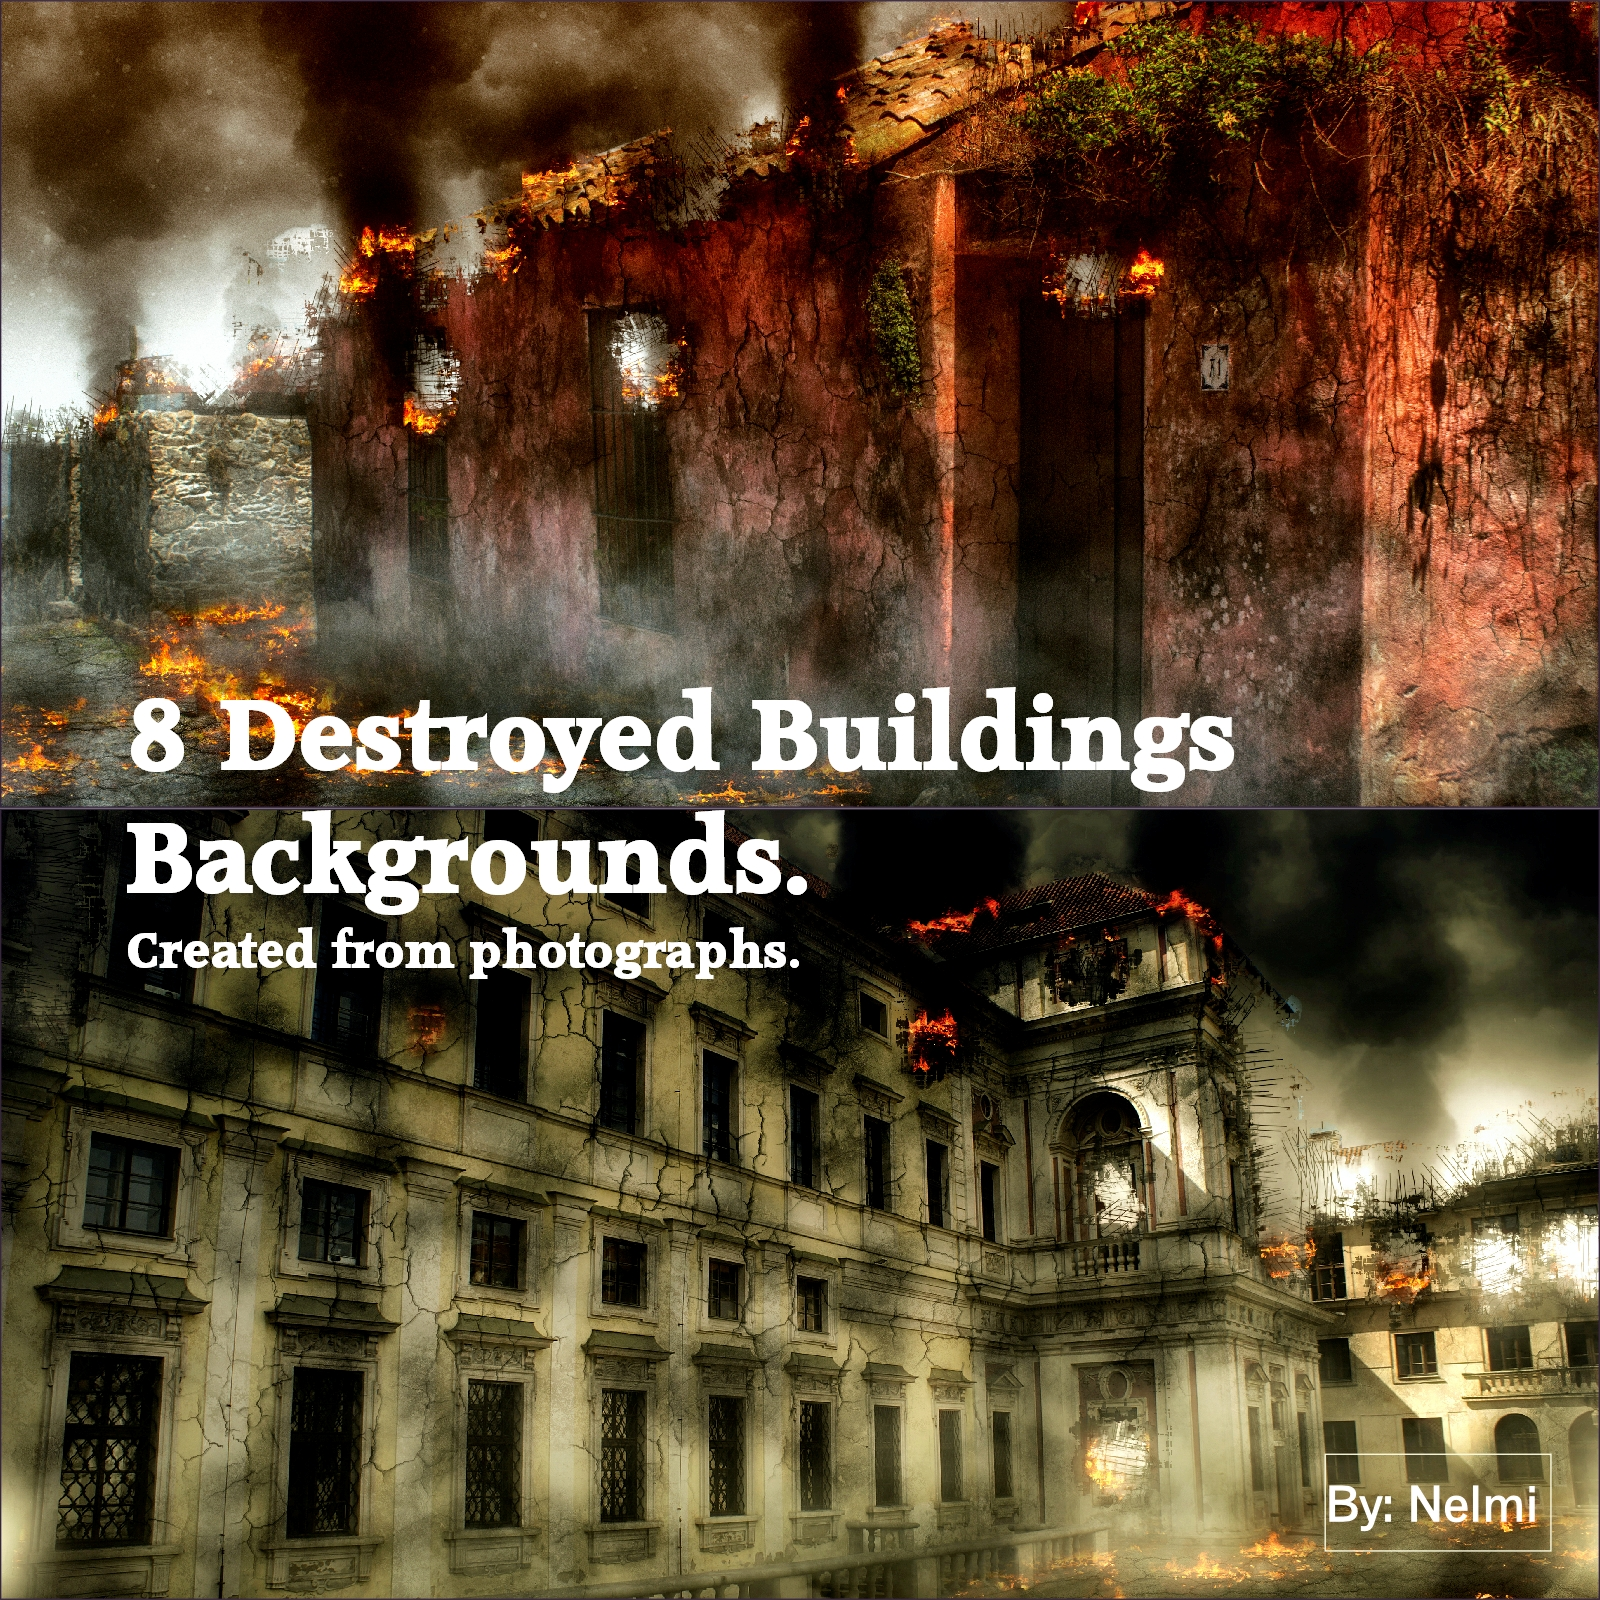 8 Destroyed Buildings Backgrounds